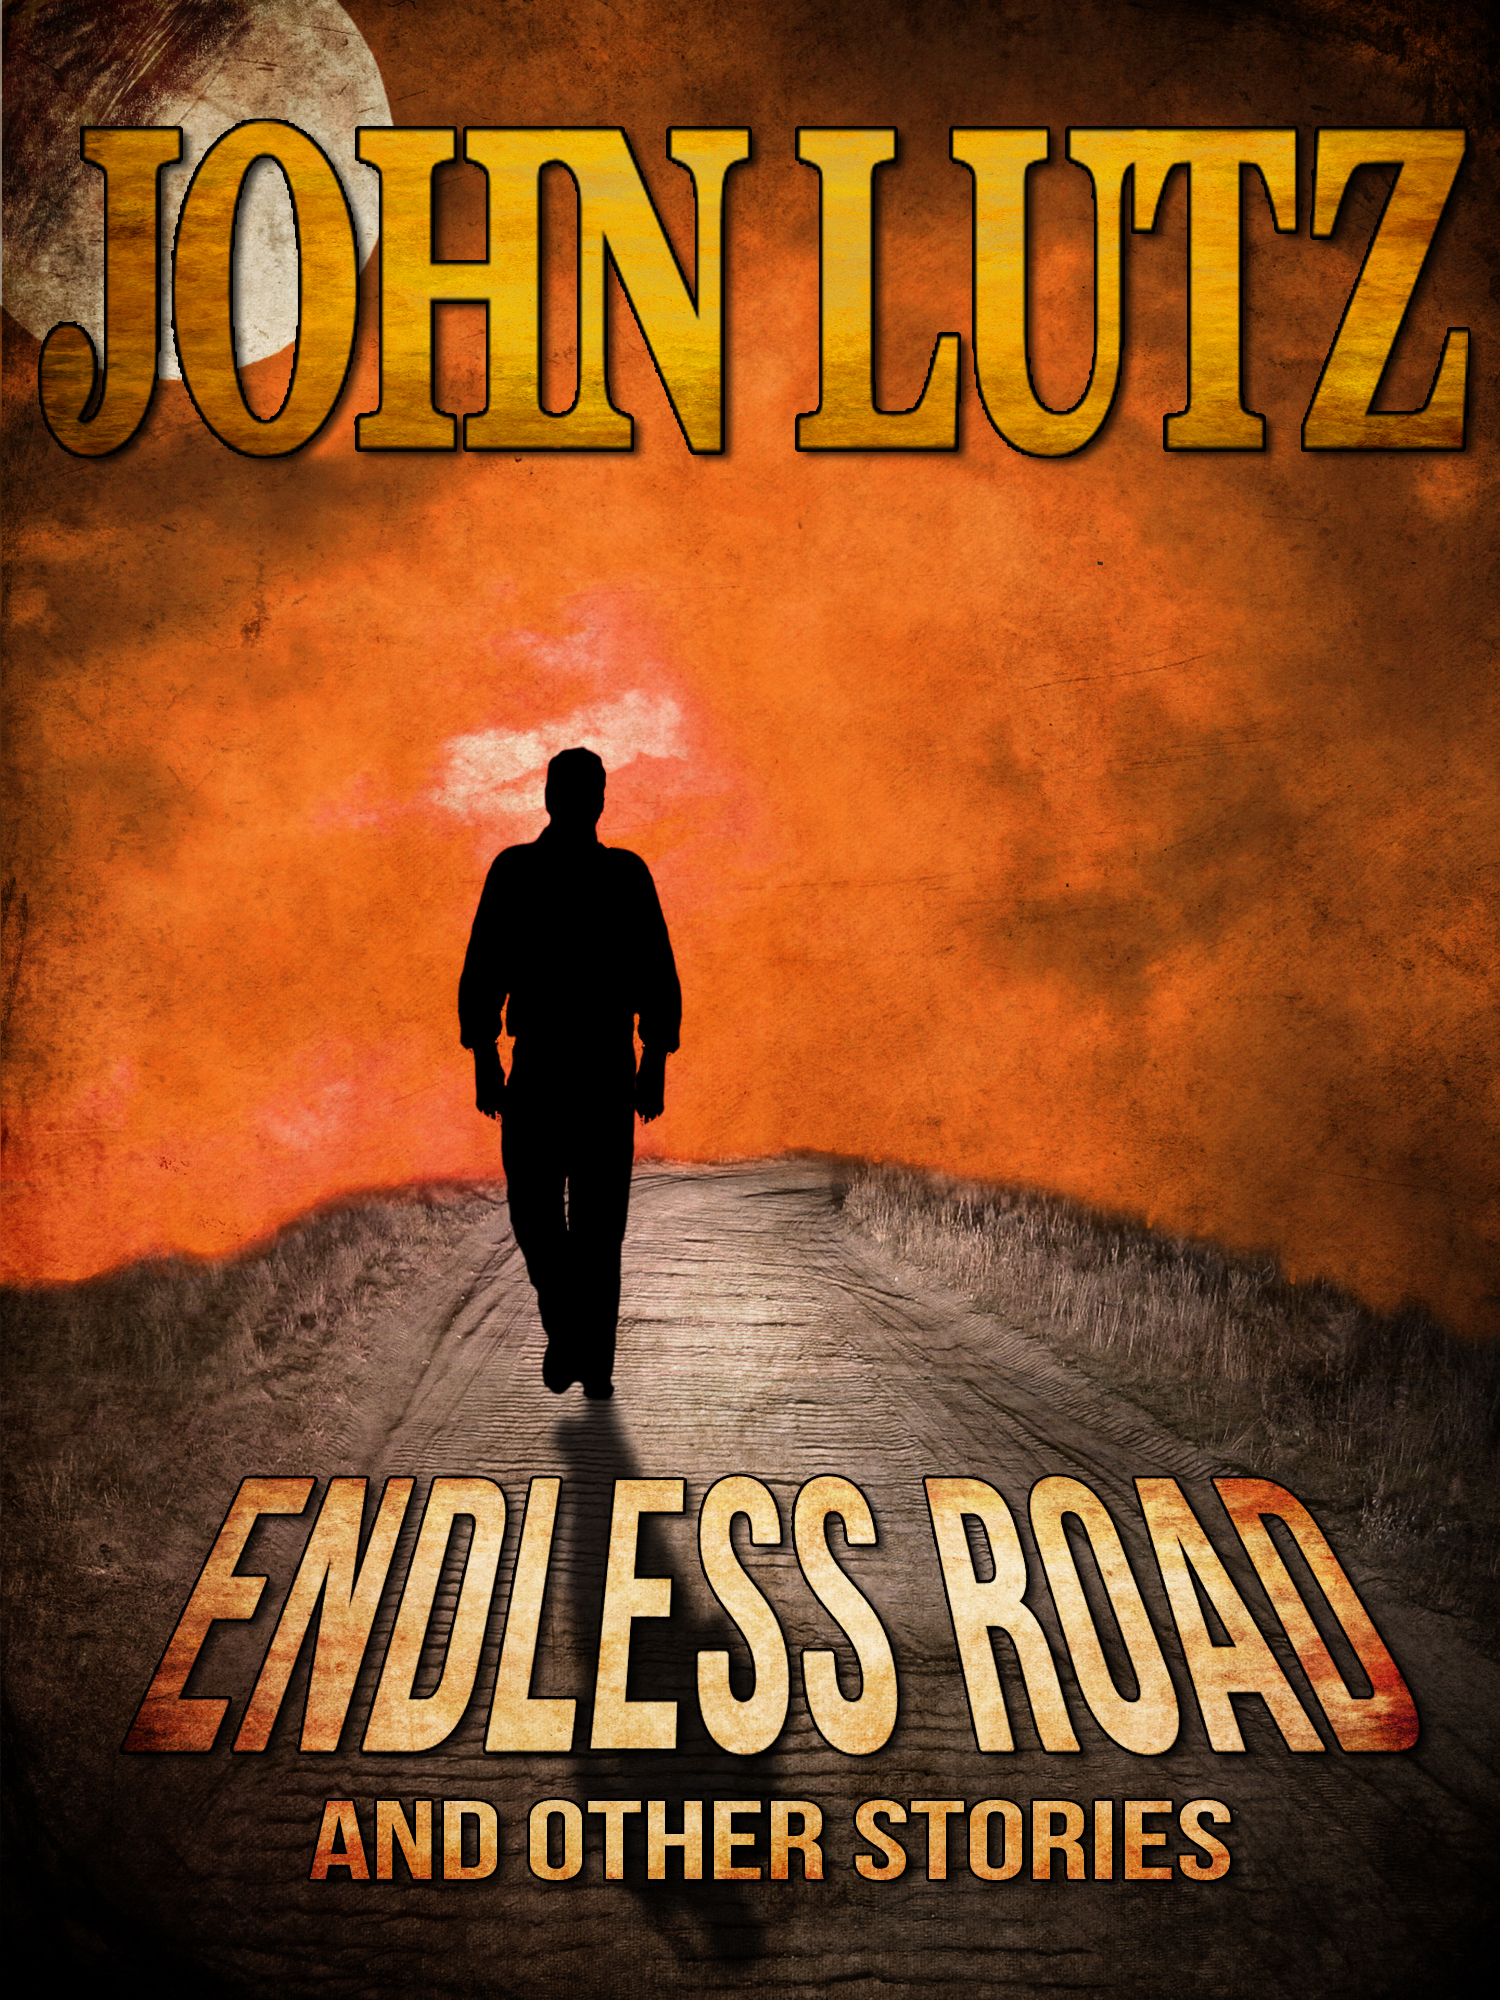 an analysis of the ways to create suspense in a book by john lutz John lutz 12k likes john lutz has captivated suspense enthusiasts for over four decades with more than 45 novels, several of which have been adapted.